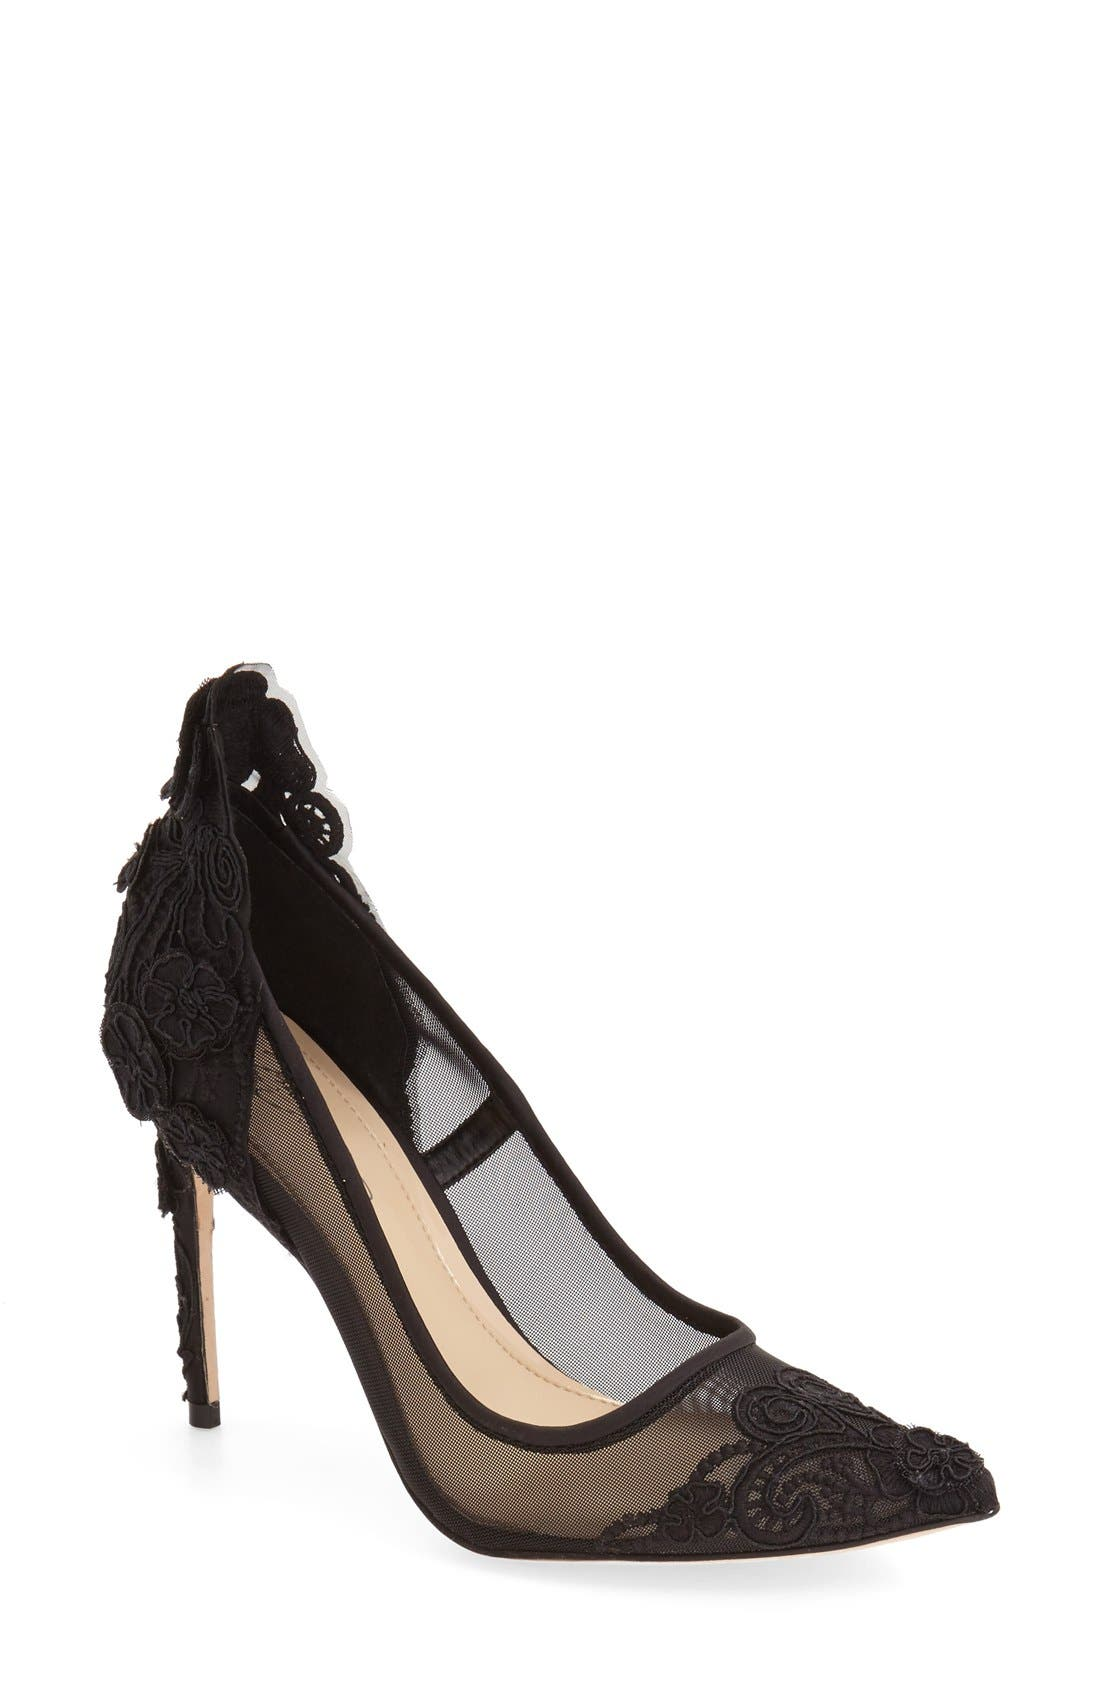 'Ophelia' Pointy Toe Pump, Main, color, 001